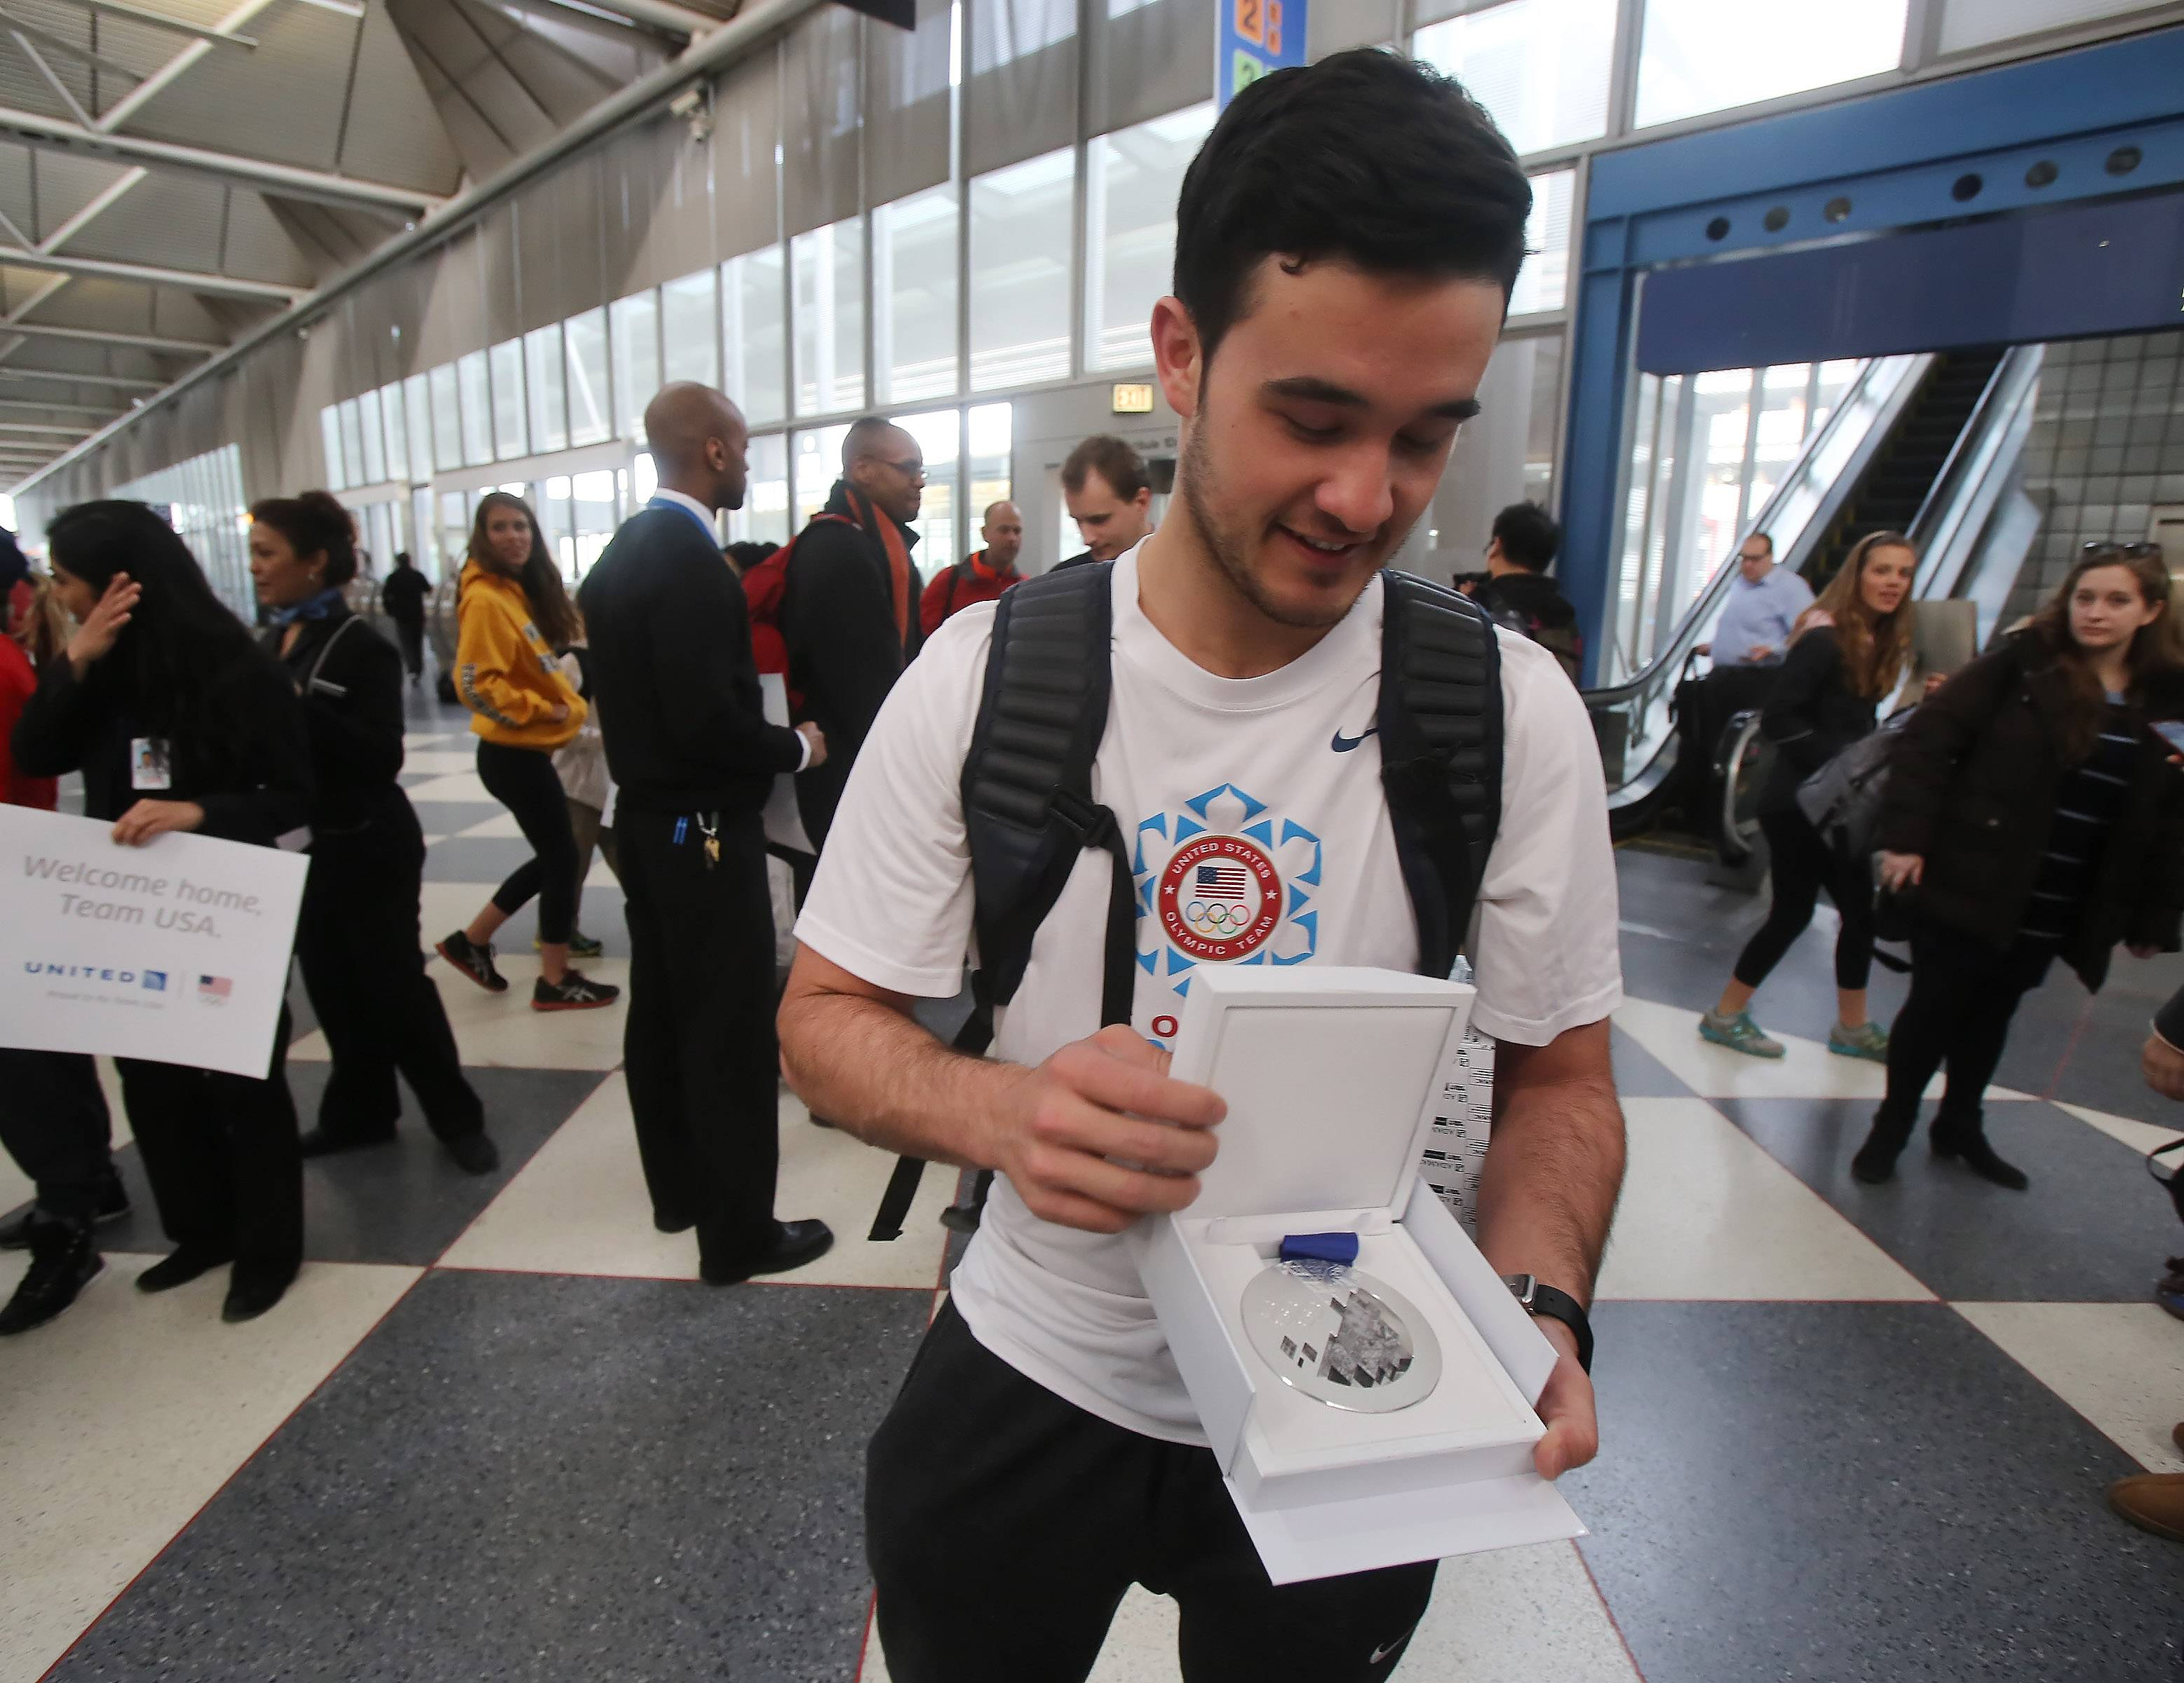 Speed skater Eddy Alvarez shows the silver medal he won at the Winter Olympics in Sochi while passing through O'Hare International Airport Monday, on his way home to Salt Lake City, Utah.